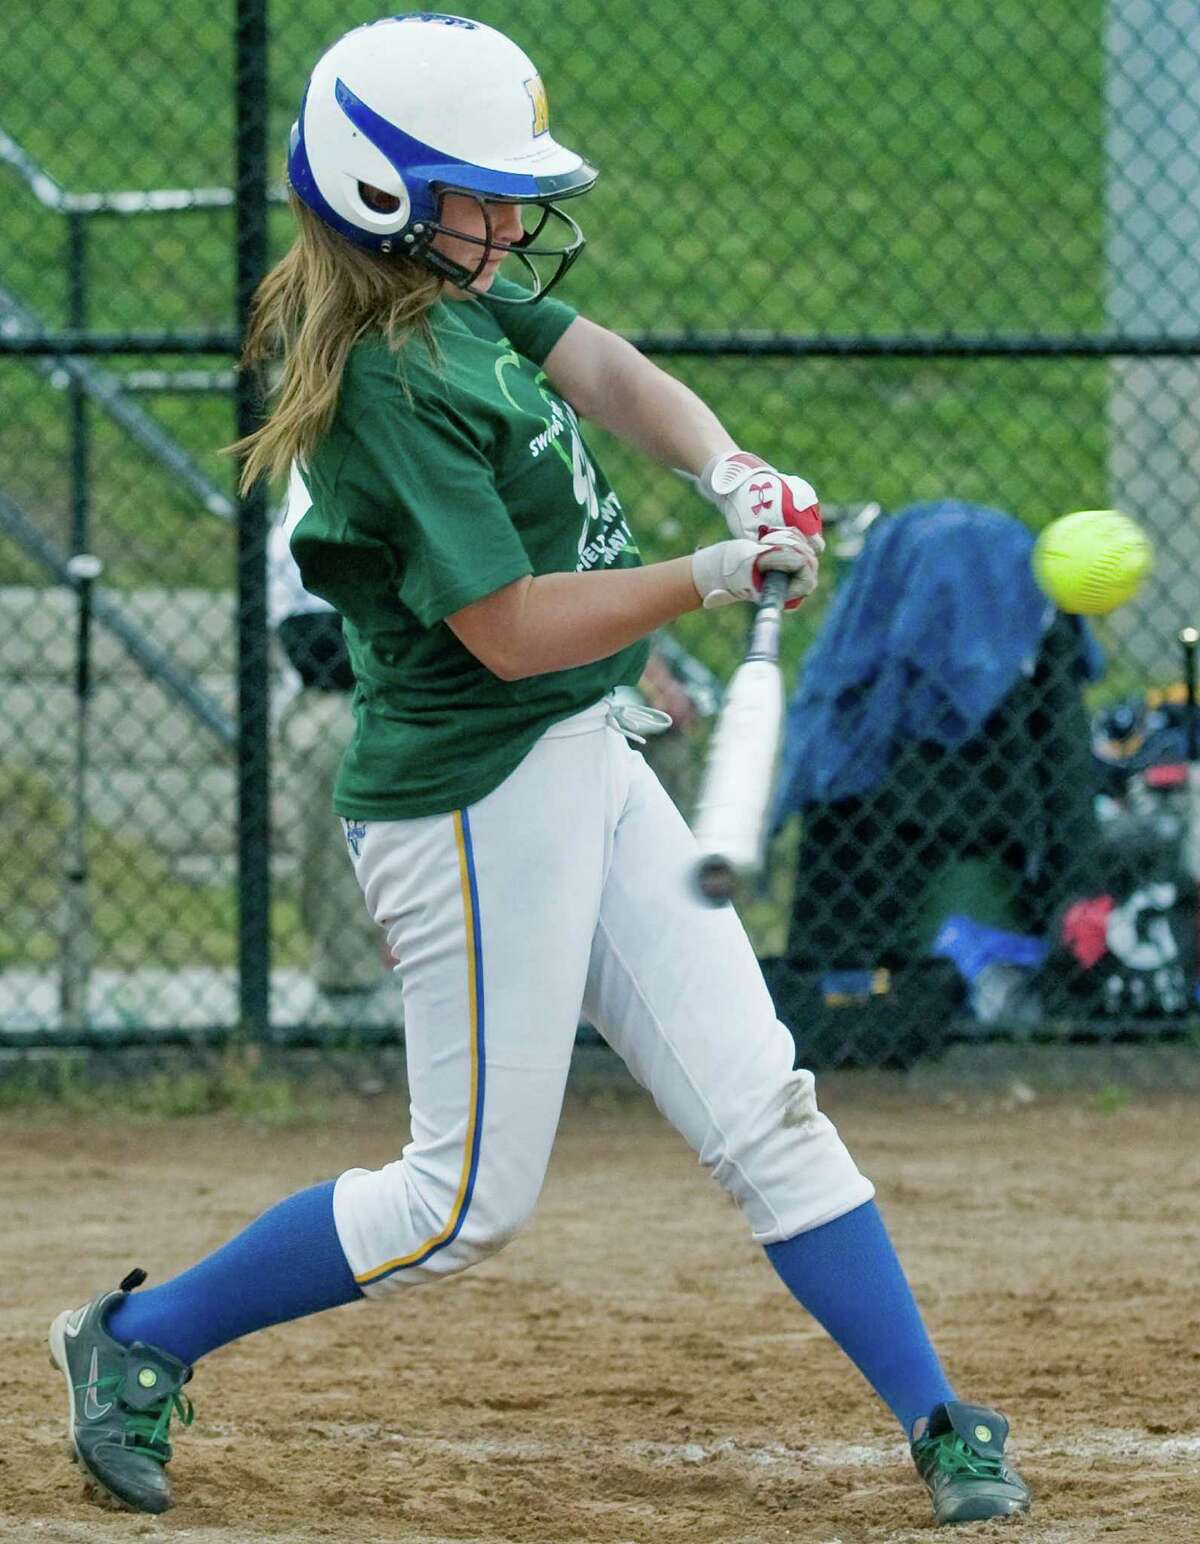 Newtown High School batter Katie Laaksonen swings at a pitch during the Sandy Hook Memorial softball game against Brookfield High School, played at Treadwell Park in Newtown. Wednesday, May 15, 2013